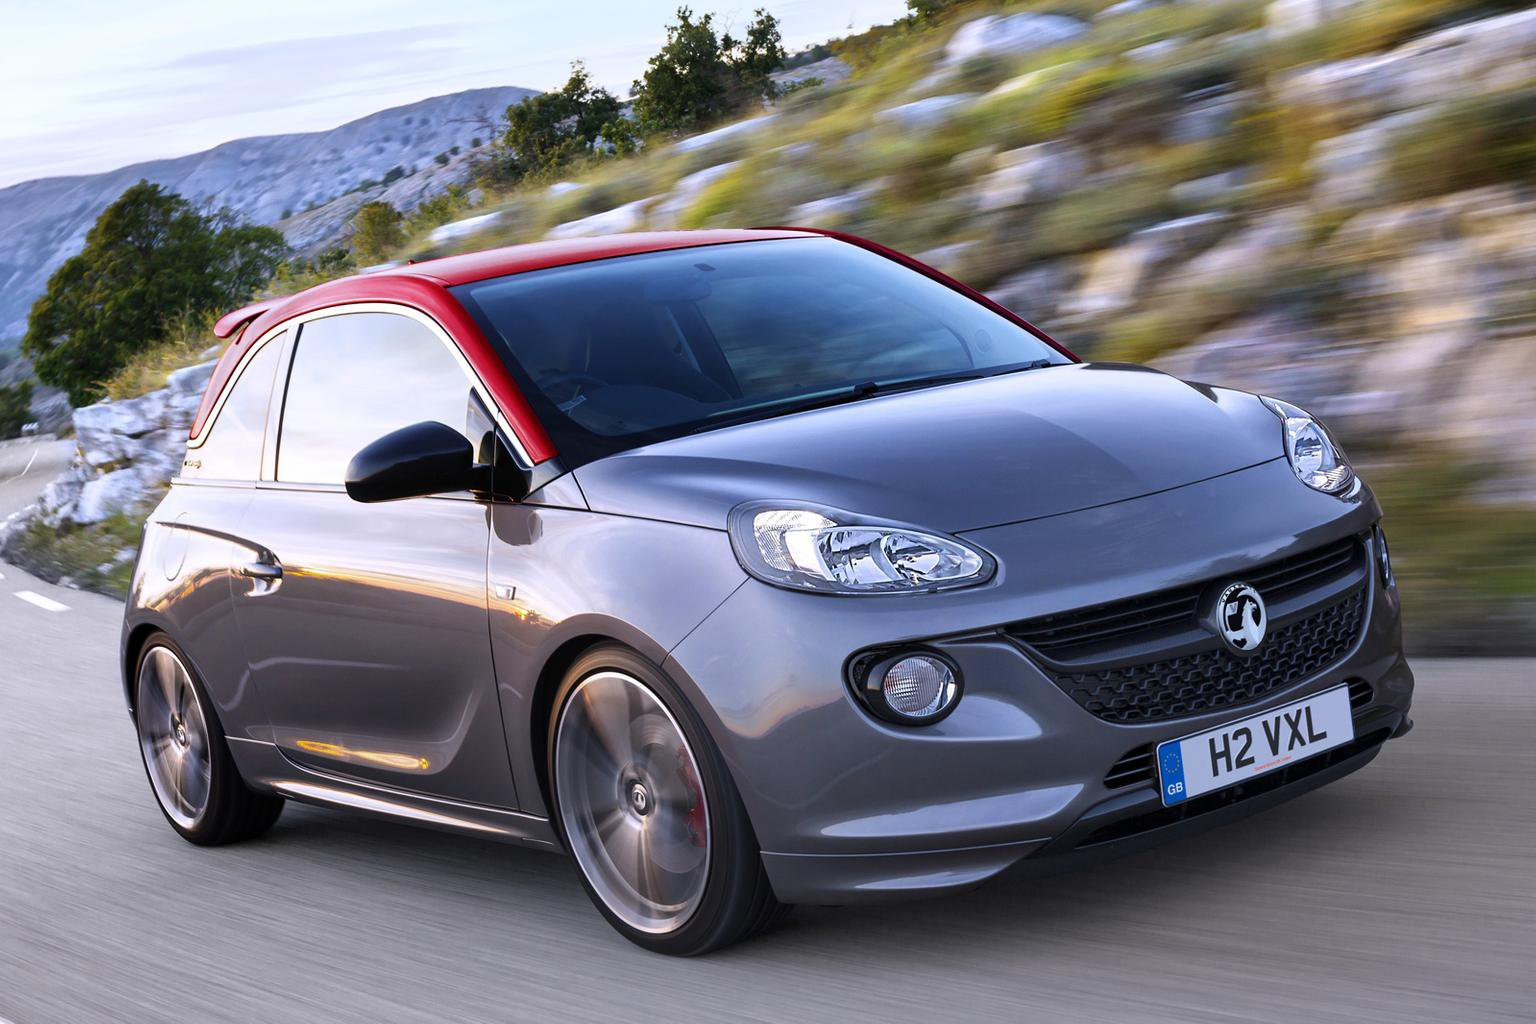 News round-up: Vauxhall Adam S, 141mpg Citroen C4 Cactus and Peugeot Quartz concept at Paris show